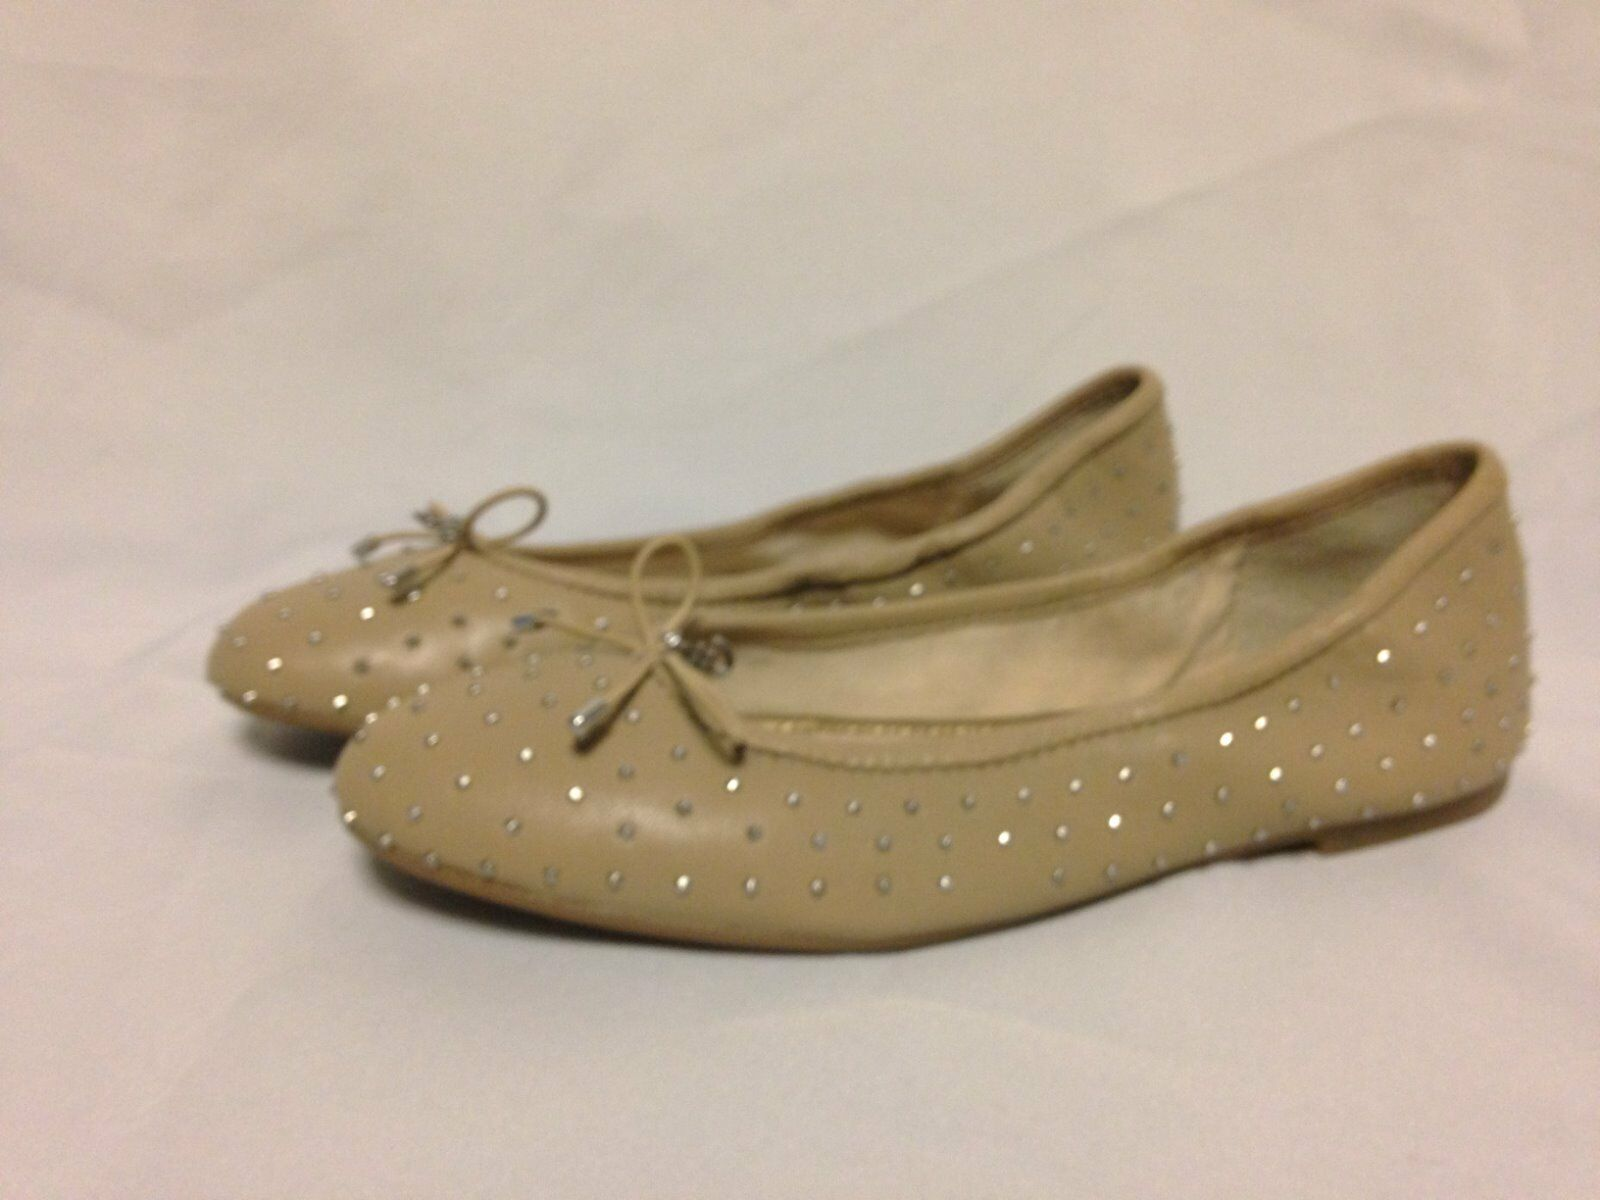 Sam Edelman Frankie Studded Flat 6 M Nude Leather A4364L8254   New with Box